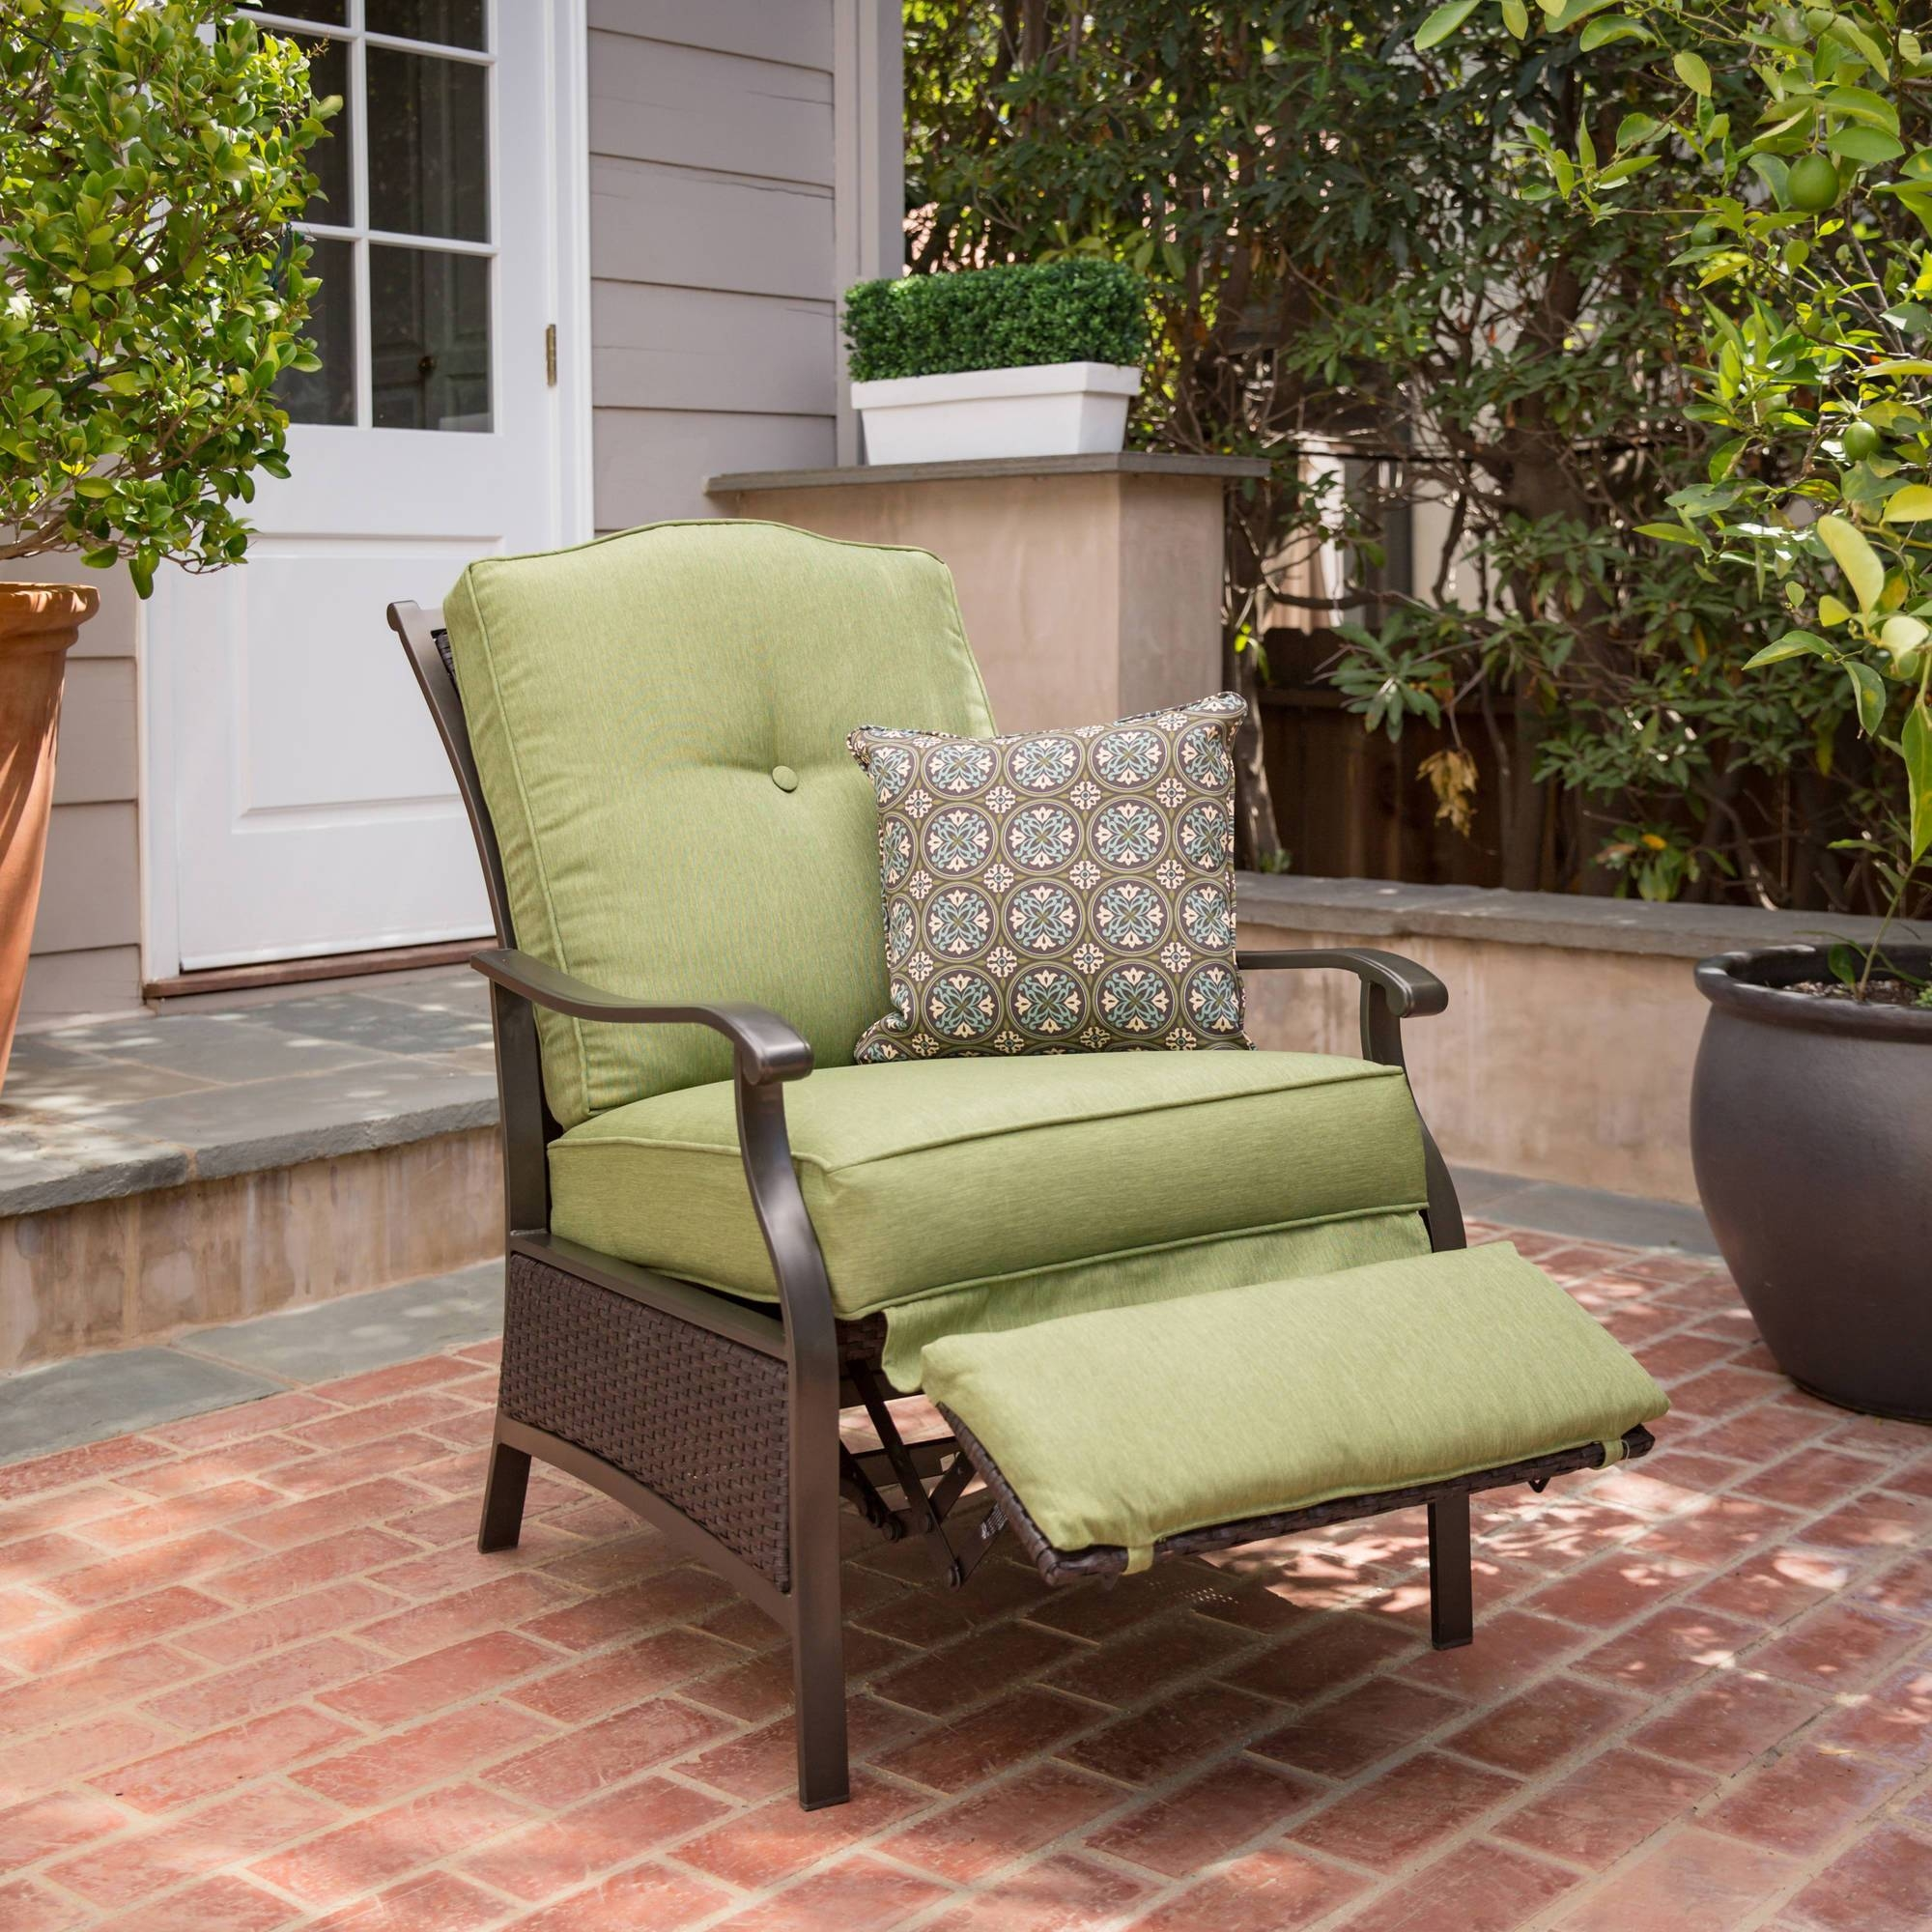 Patio Furniture - Walmart in Outdoor Sofas And Chairs (Image 13 of 15)